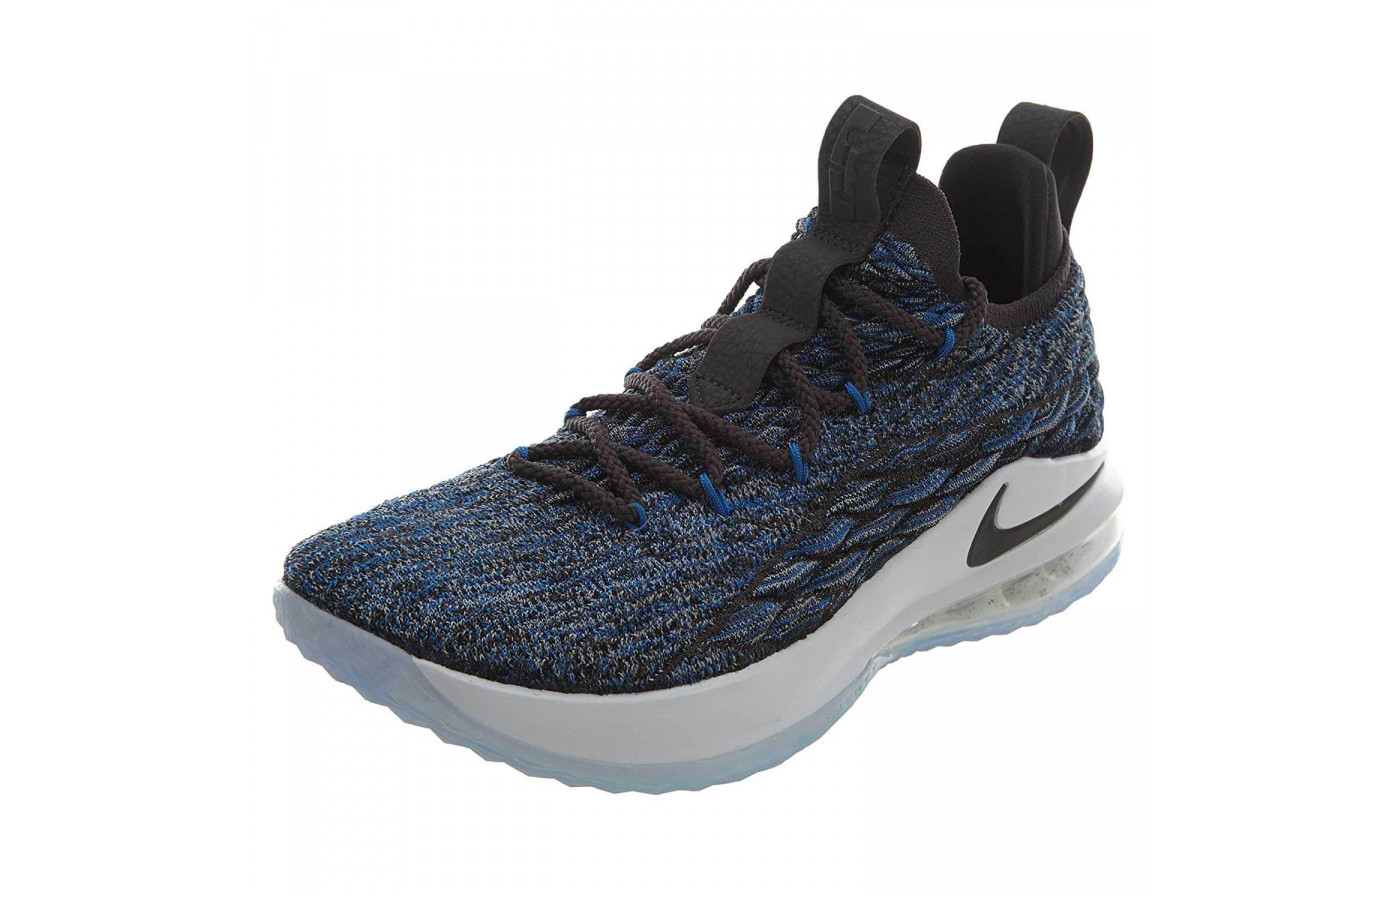 dec66dbe90703 The Lebron 15 Low is constructed with a Battleknit upper material ...